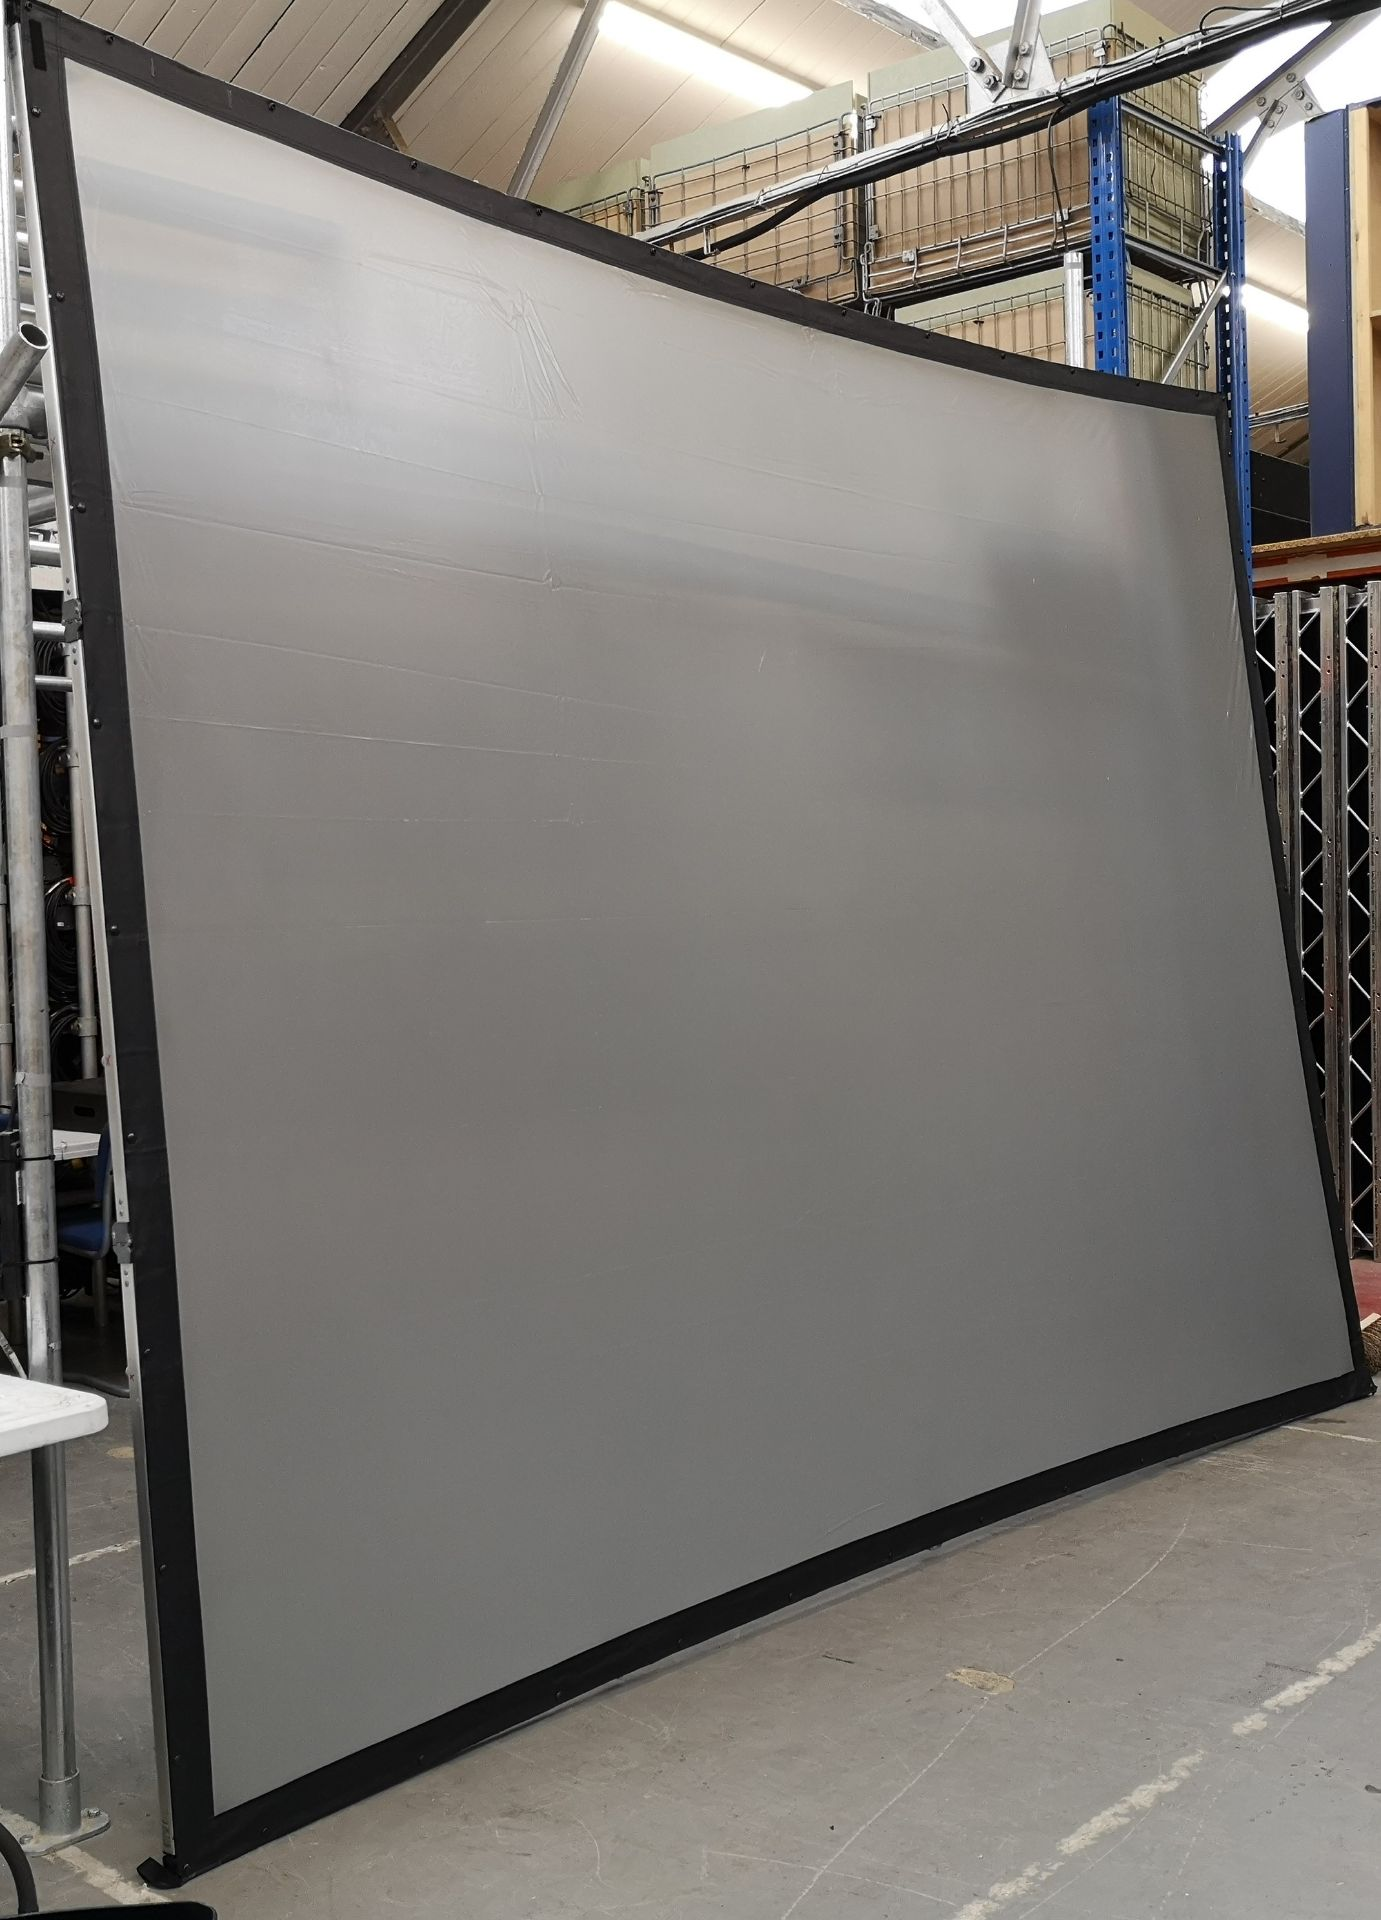 A DA-LITE 12ft x 9ft Rear Projection Fastfold Screen with frame, legs, bolts, screen surface, bag - Image 4 of 10